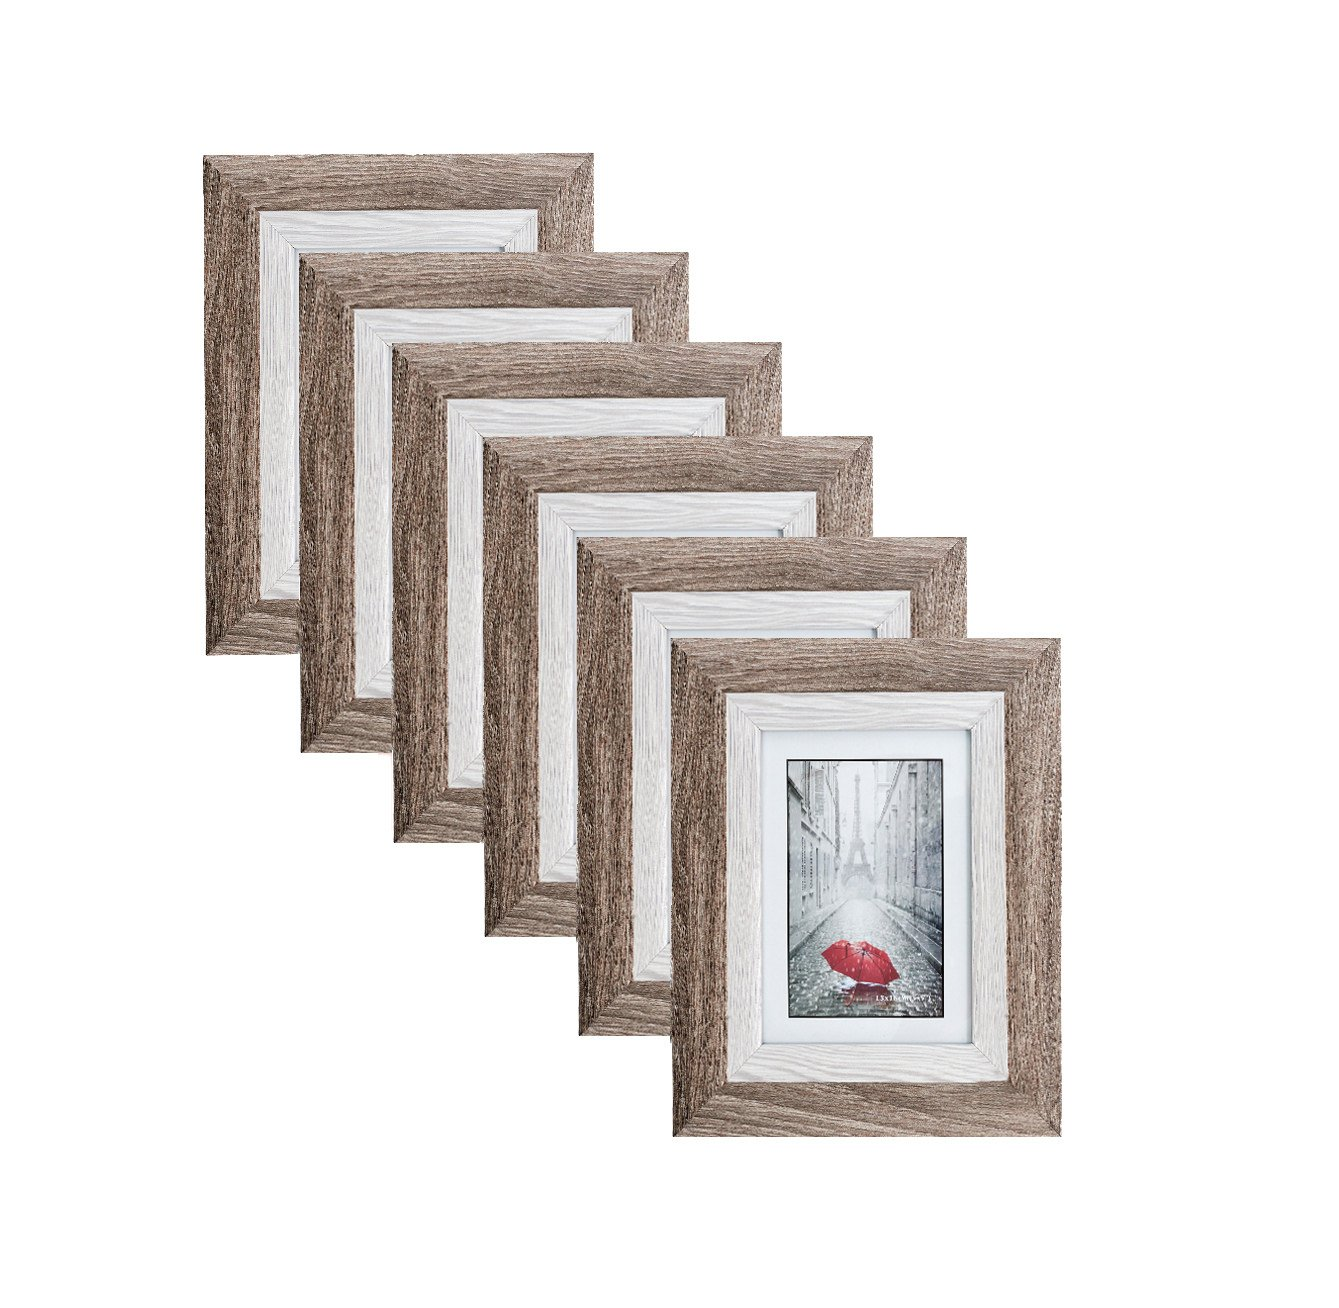 Distressed Brown MDF Wood Picture Frame 5x7 (6 pc) Display with Photo Glass Front, Easel Back, and Wall Hang Clip | 6 PIECE SET by Lambert Frame